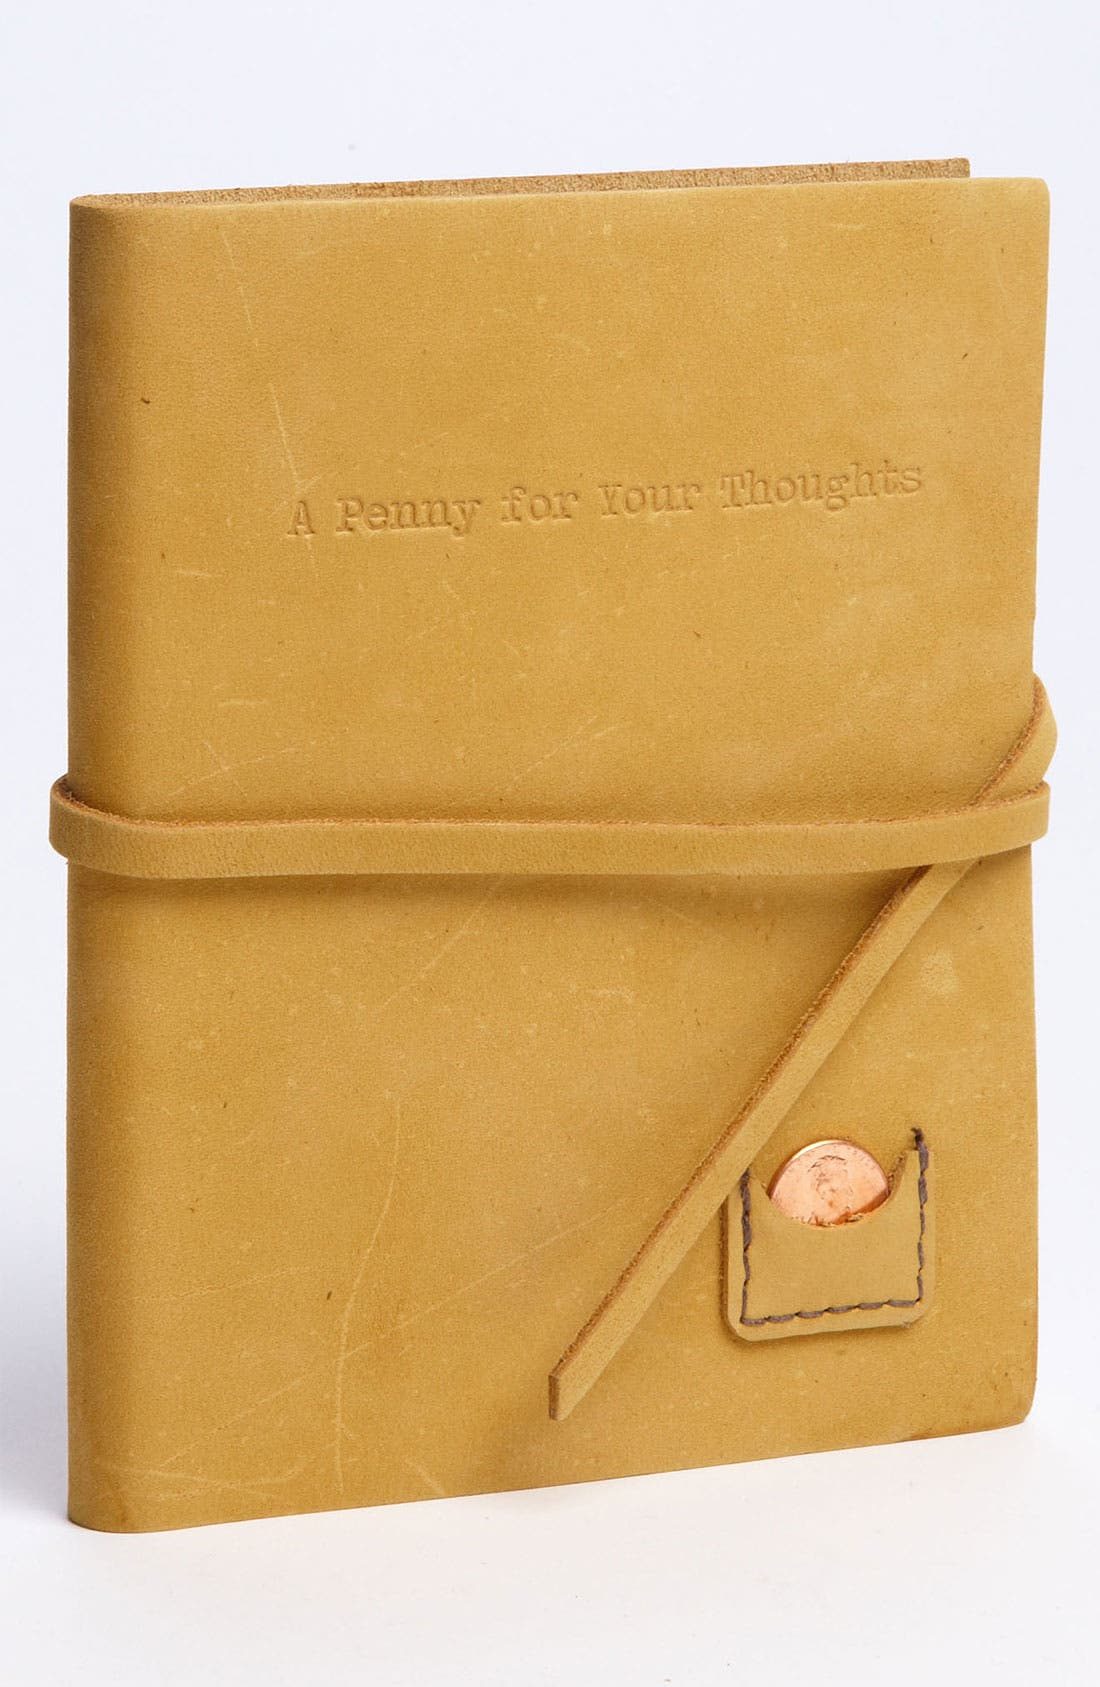 Main Image - Studio Penny Lane 'A Penny for Your Thoughts' Leather Journal